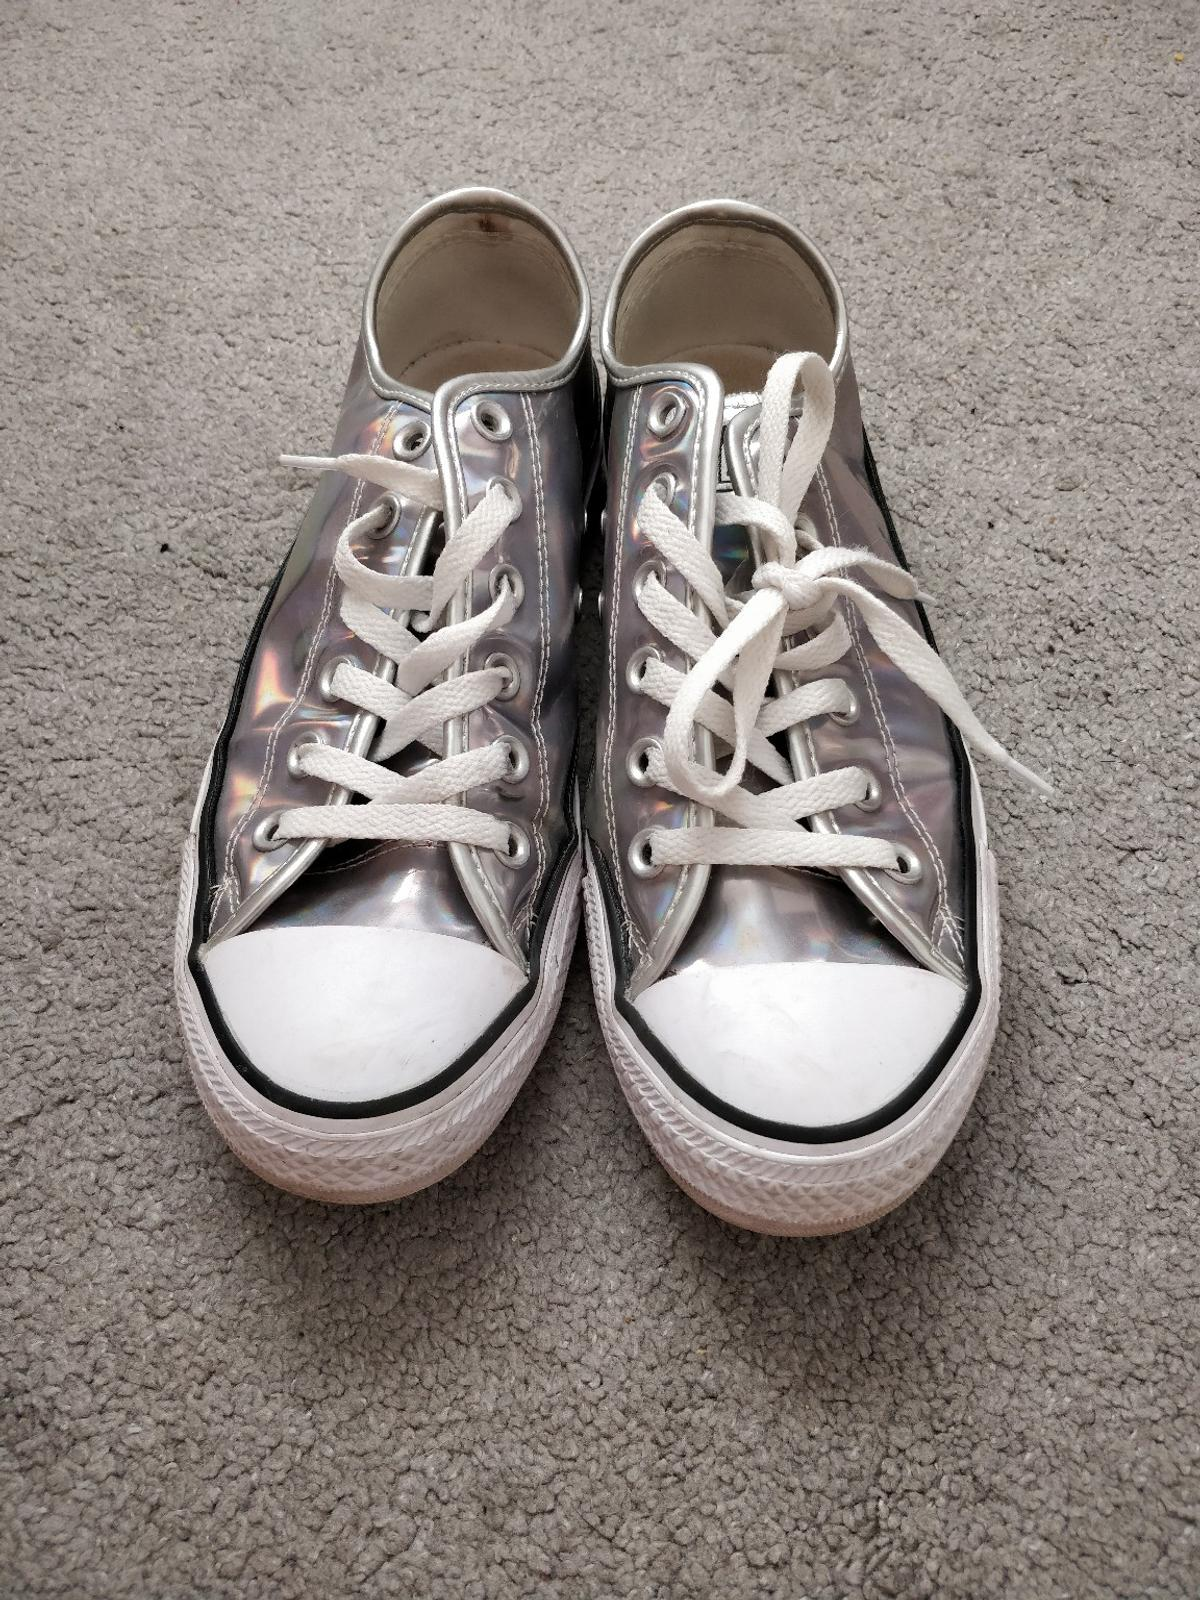 biggest discount top quality united kingdom Converse all stars silver/ holographic size 6